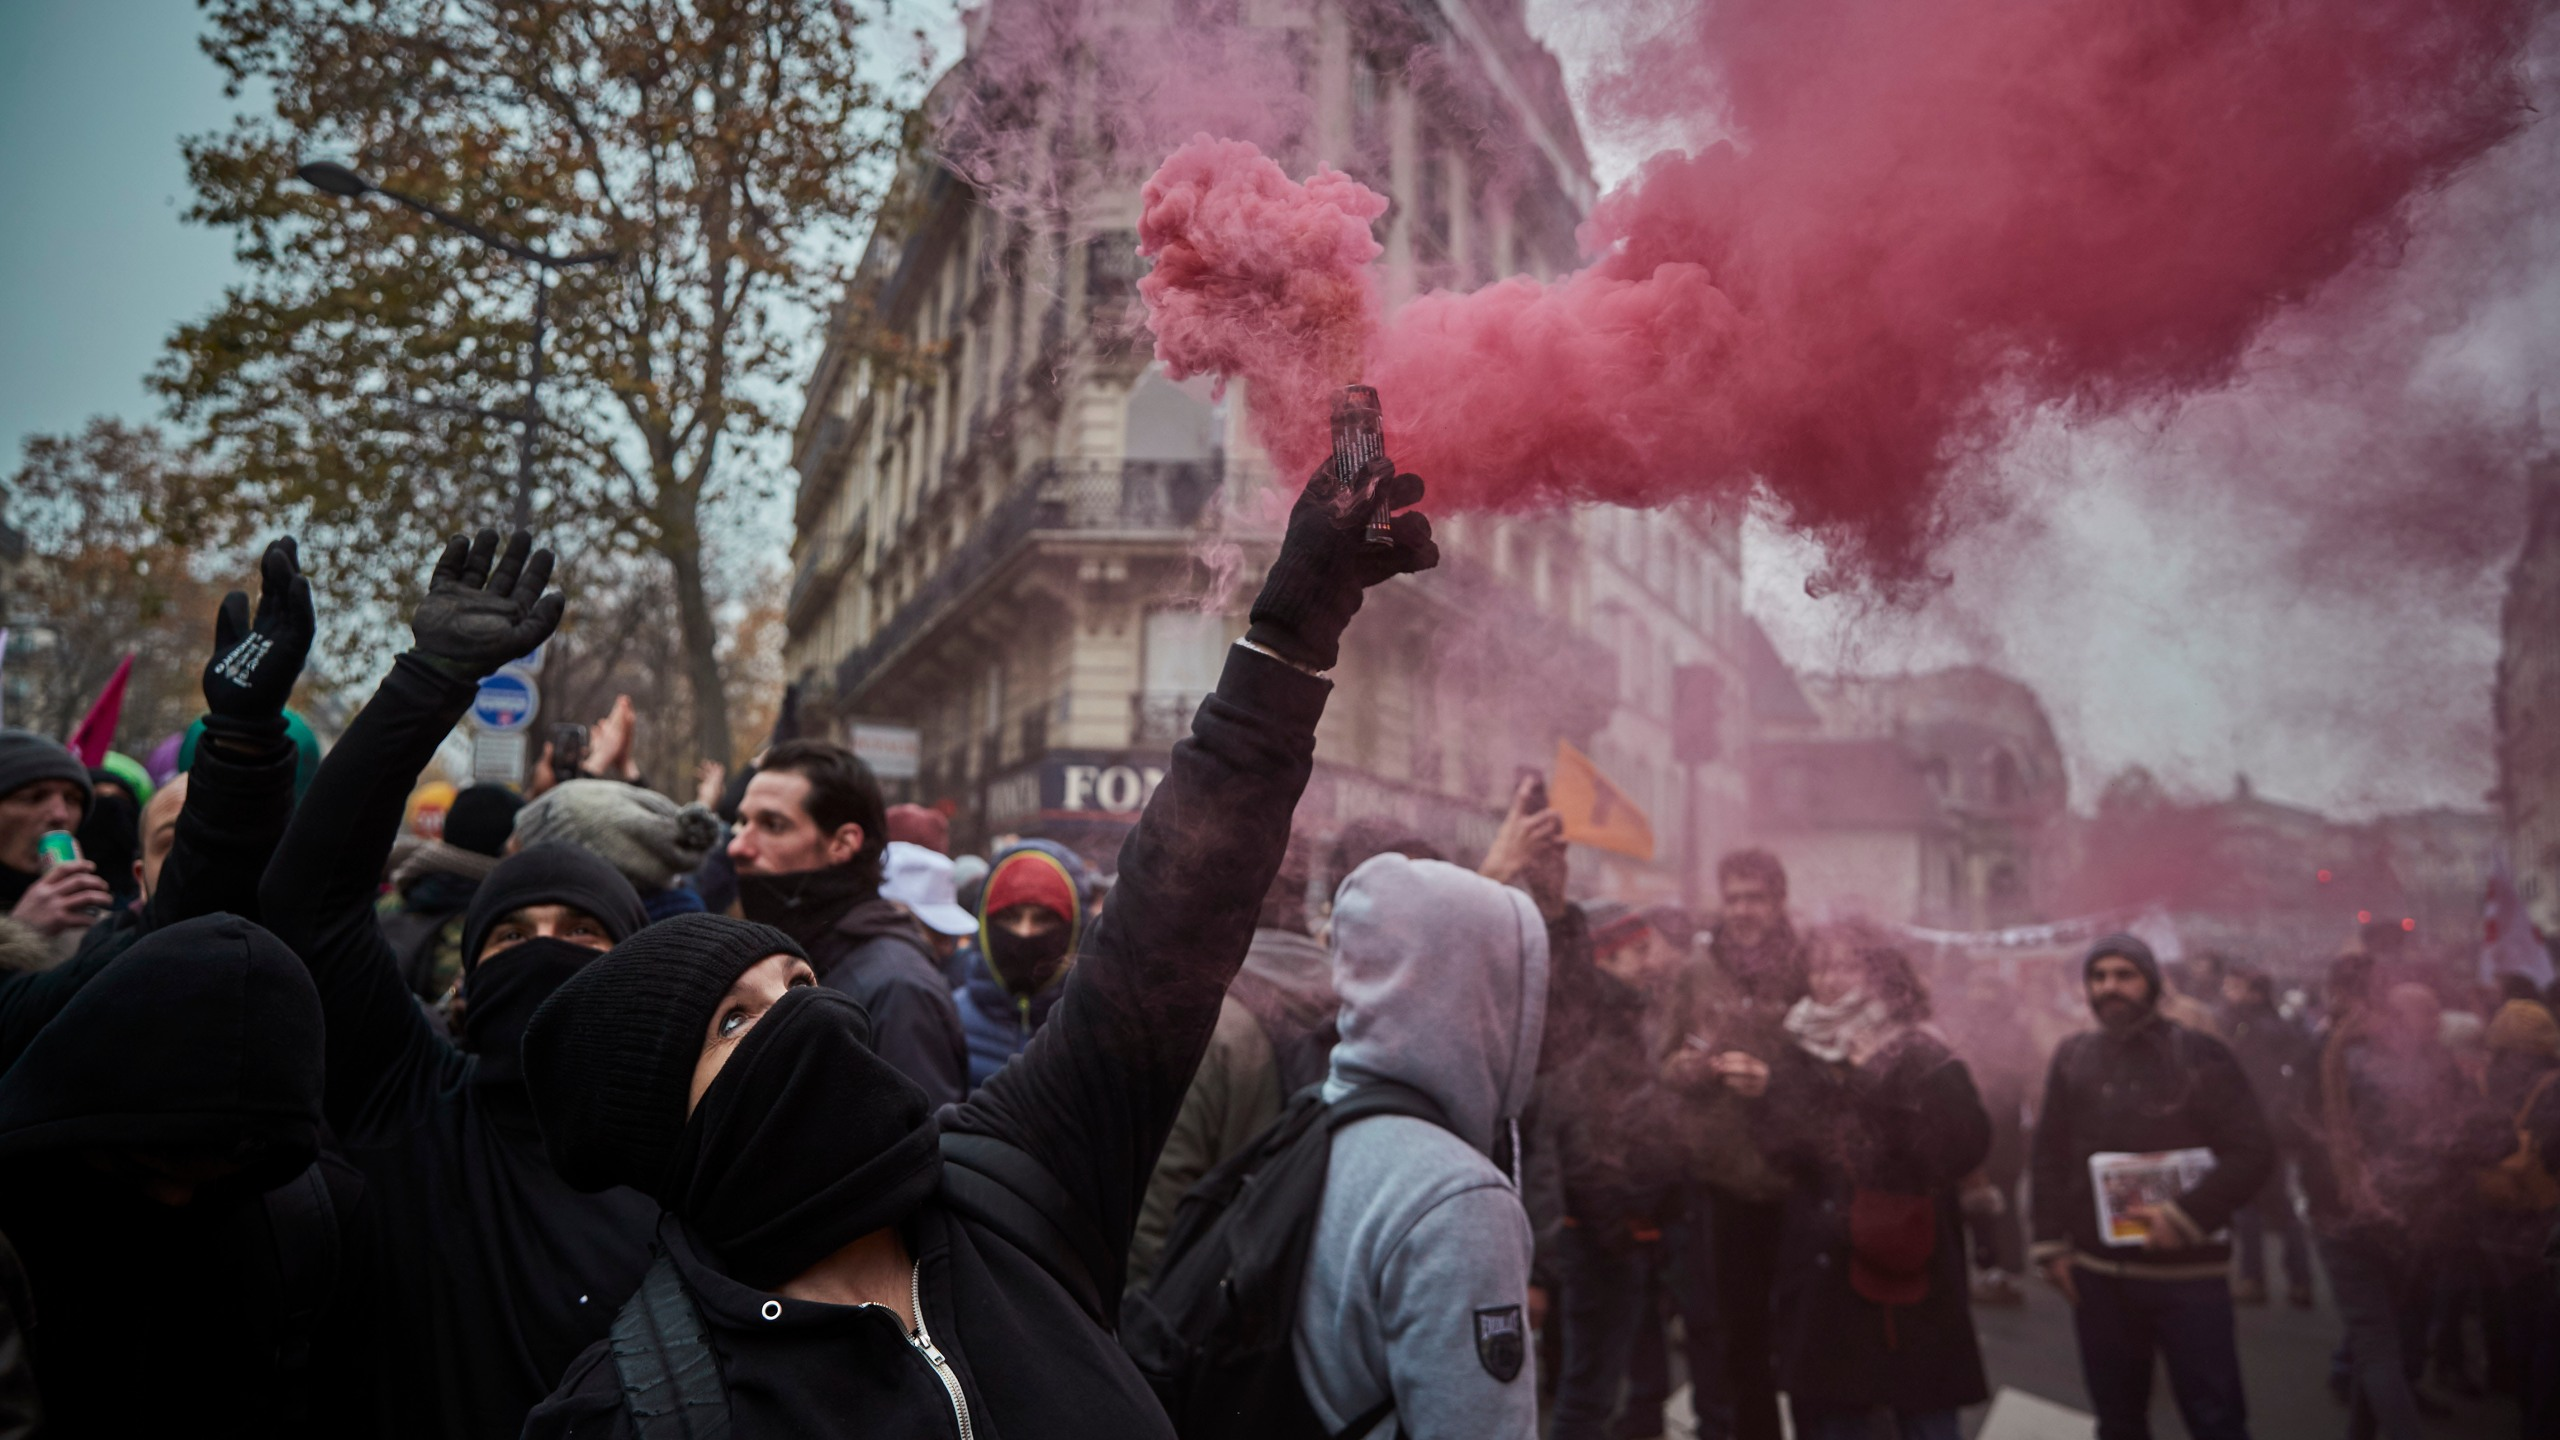 Protestors wave colored flares during a rally near Place de Republique in support of the national strike in France, one of the largest nationwide strikes in years, on Dec. 5, 2019 in Paris, France. (Credit: Kiran Ridley/Getty Images)